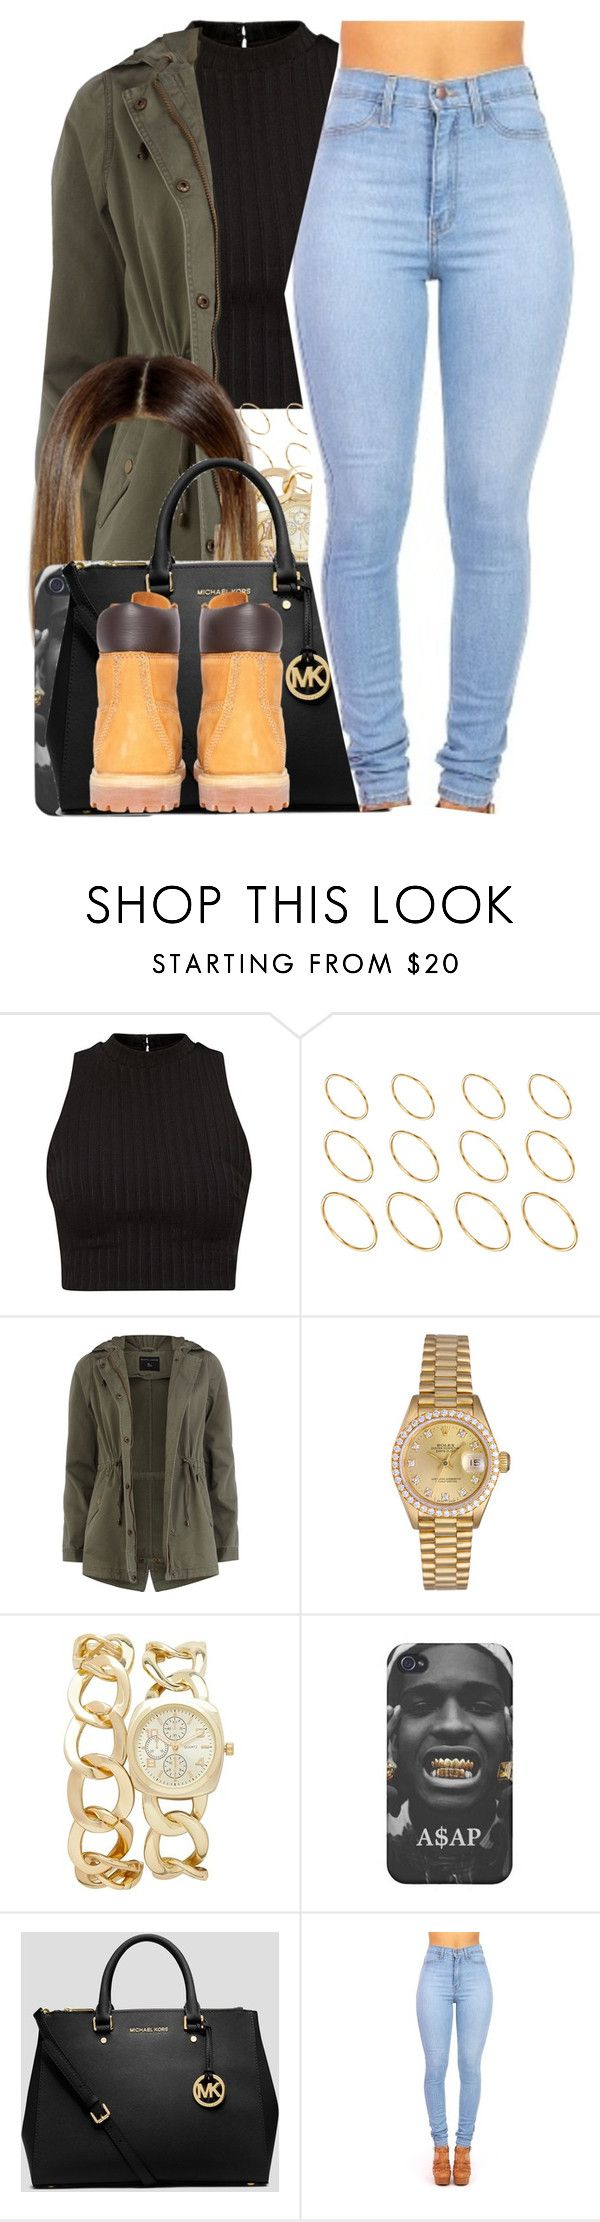 """Fetty Wap / Again"" by nasiaamiraaa ❤ liked on Polyvore featuring ASOS, Dorothy Perkins, Rolex, Forever New, MICHAEL Michael Kors, Timberland and NanaOutfits"